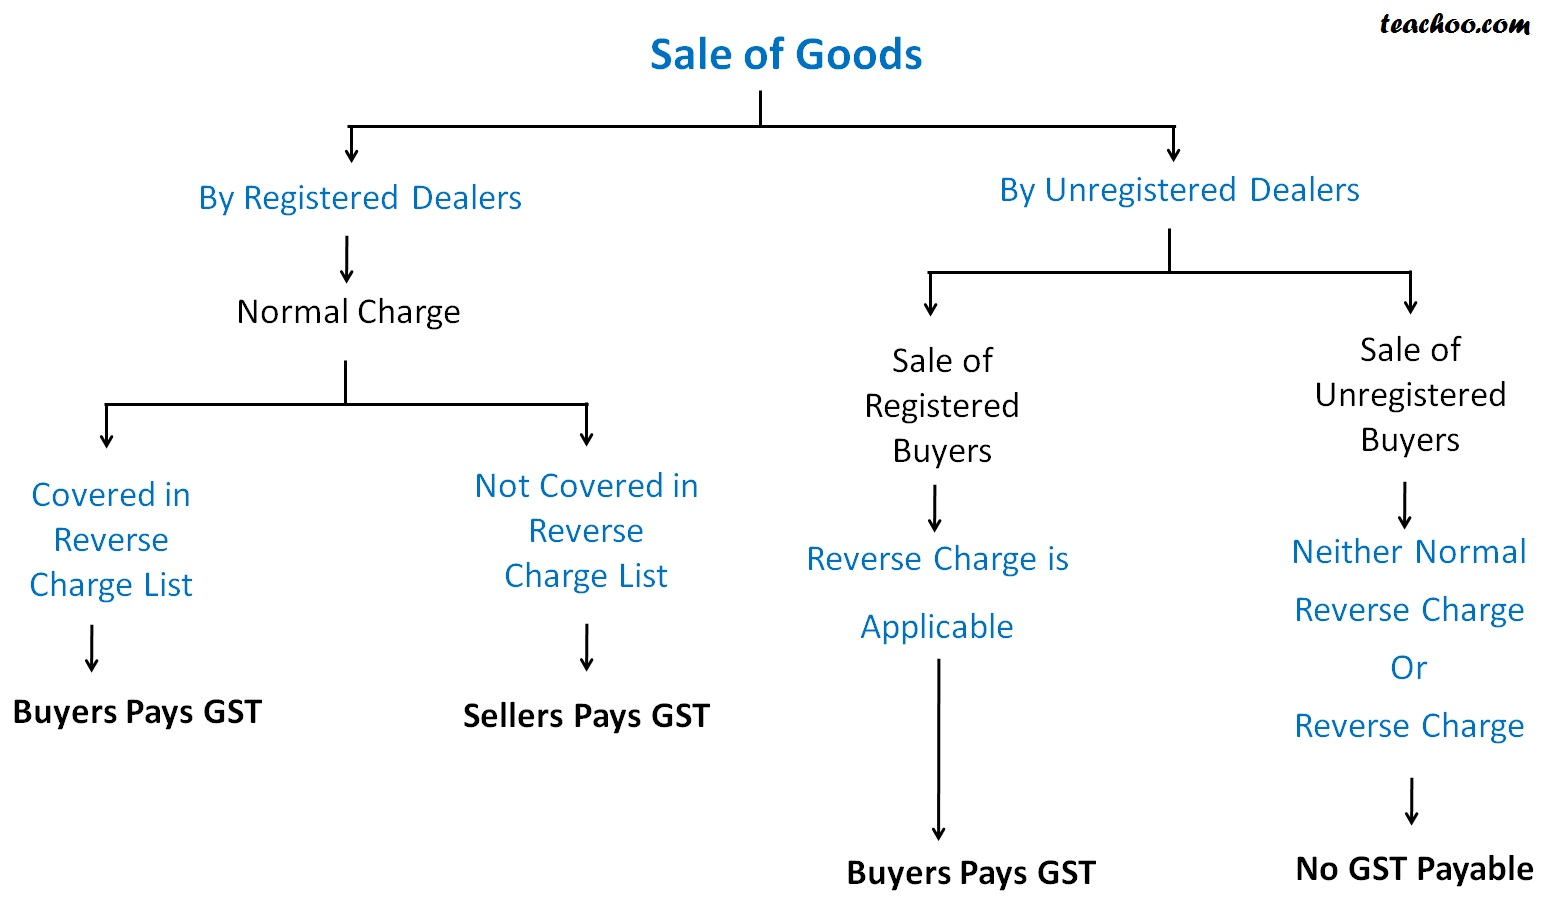 Sale of goods (new).jpg